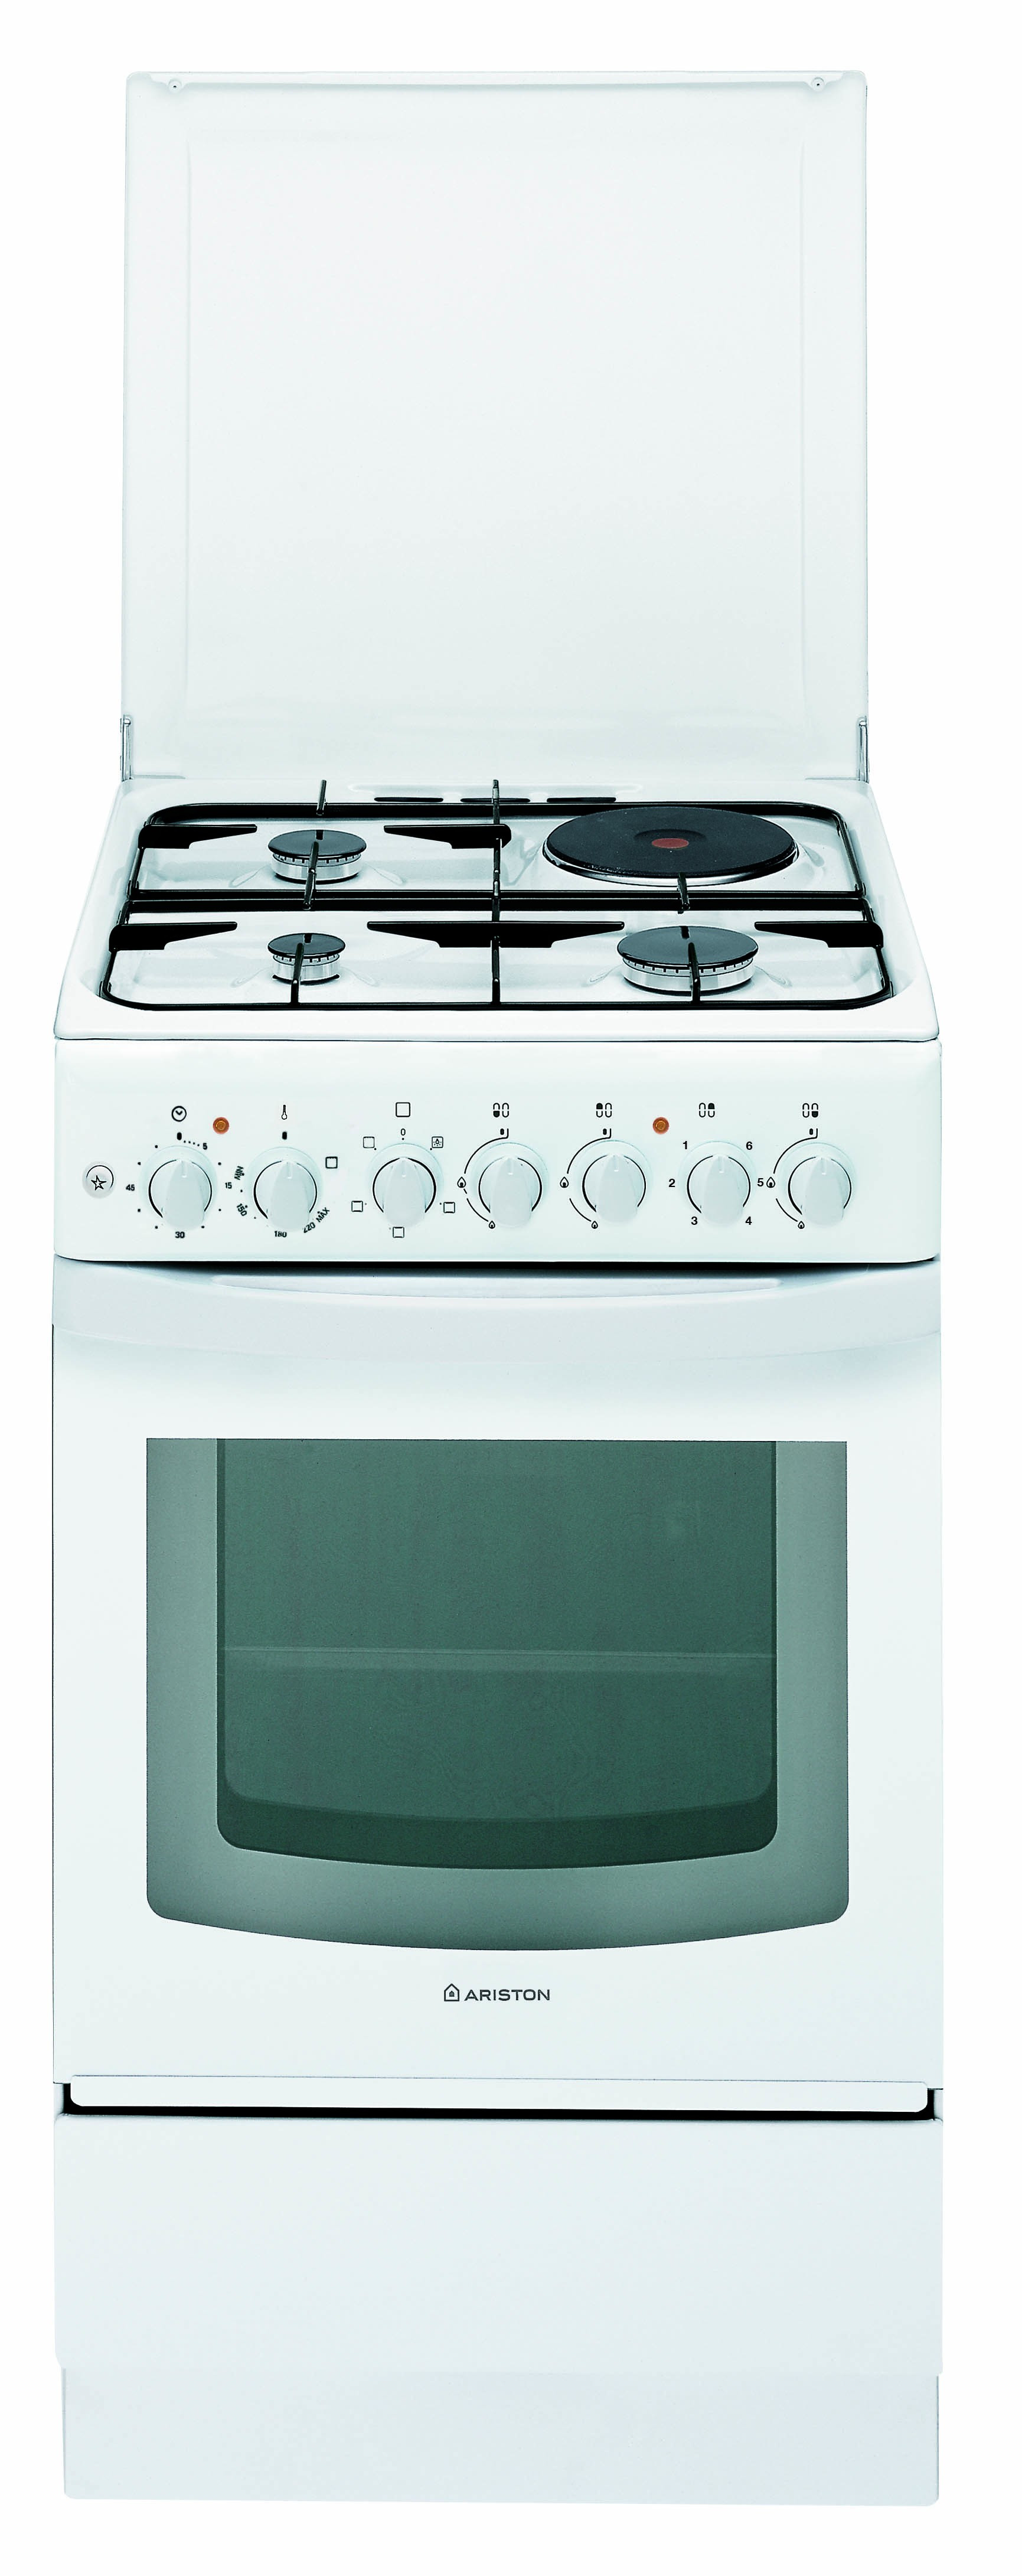 ARISTON COMBINATION COOKER, 3GAS & 1ELECTRIC